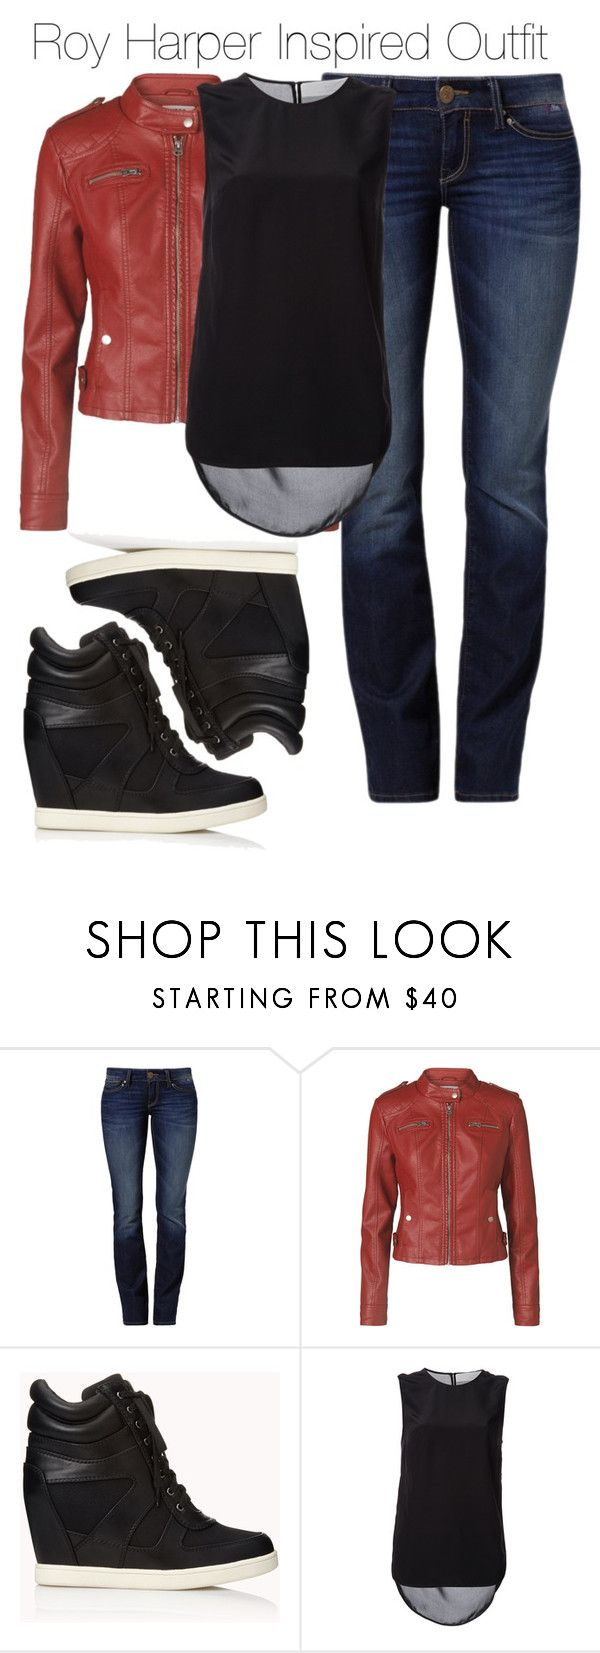 """""""Arrow - Roy Harper Inspired Outfit"""" by nathj ❤ liked on Polyvore featuring Mavi, Vero Moda, Forever 21, Thakoon Addition, leatherjacket, Arrow, sneakers and royharper"""